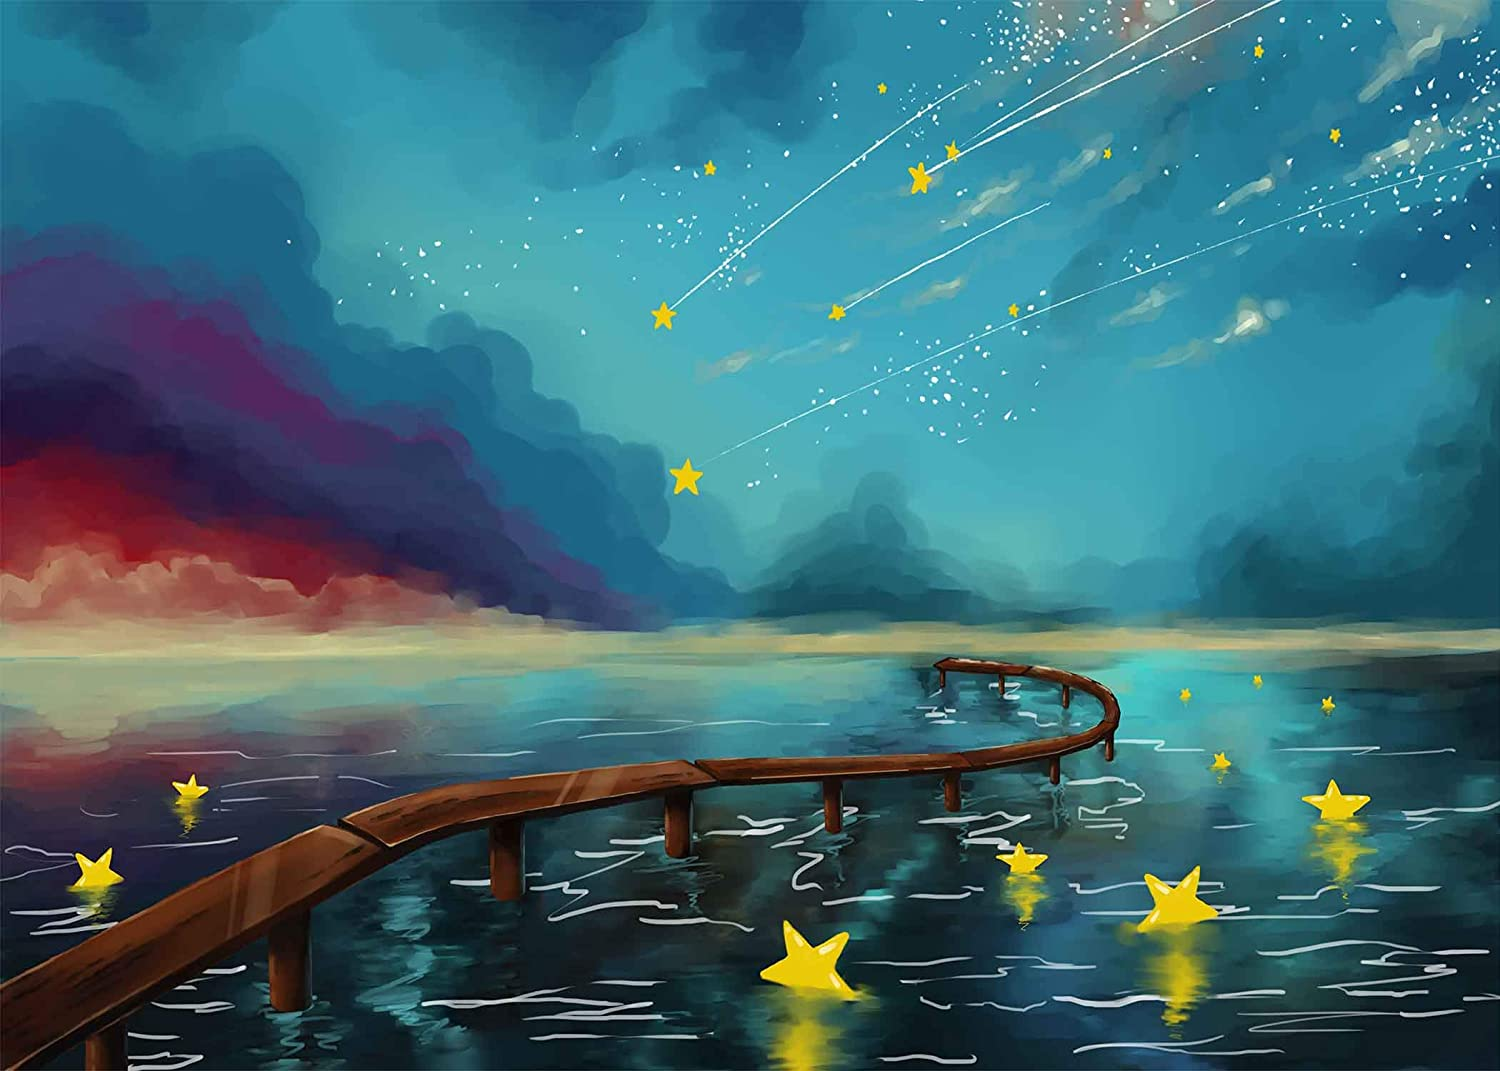 Fairy Tales Backdrop Star Cartoon Magic 7X5ft Photography Background Themed Party Photo Booth YouTube Backdrop MEETSIOY LXMT1224